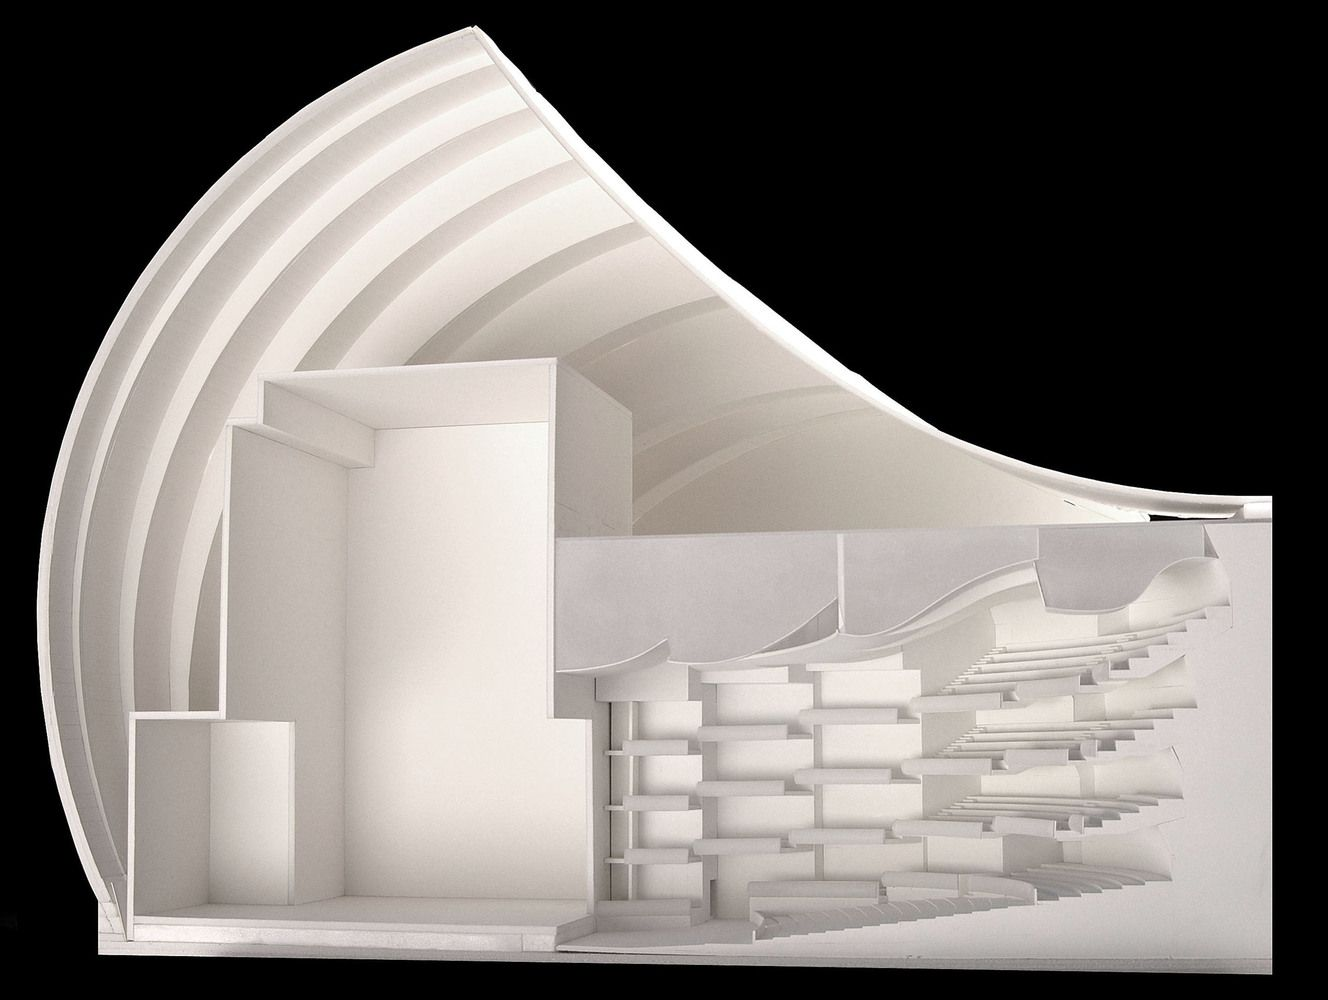 Gallery Of Kauffman Center For The Performing Arts Safdie Architects 1 Concert Hall Architecture Architecture Design Arch Model